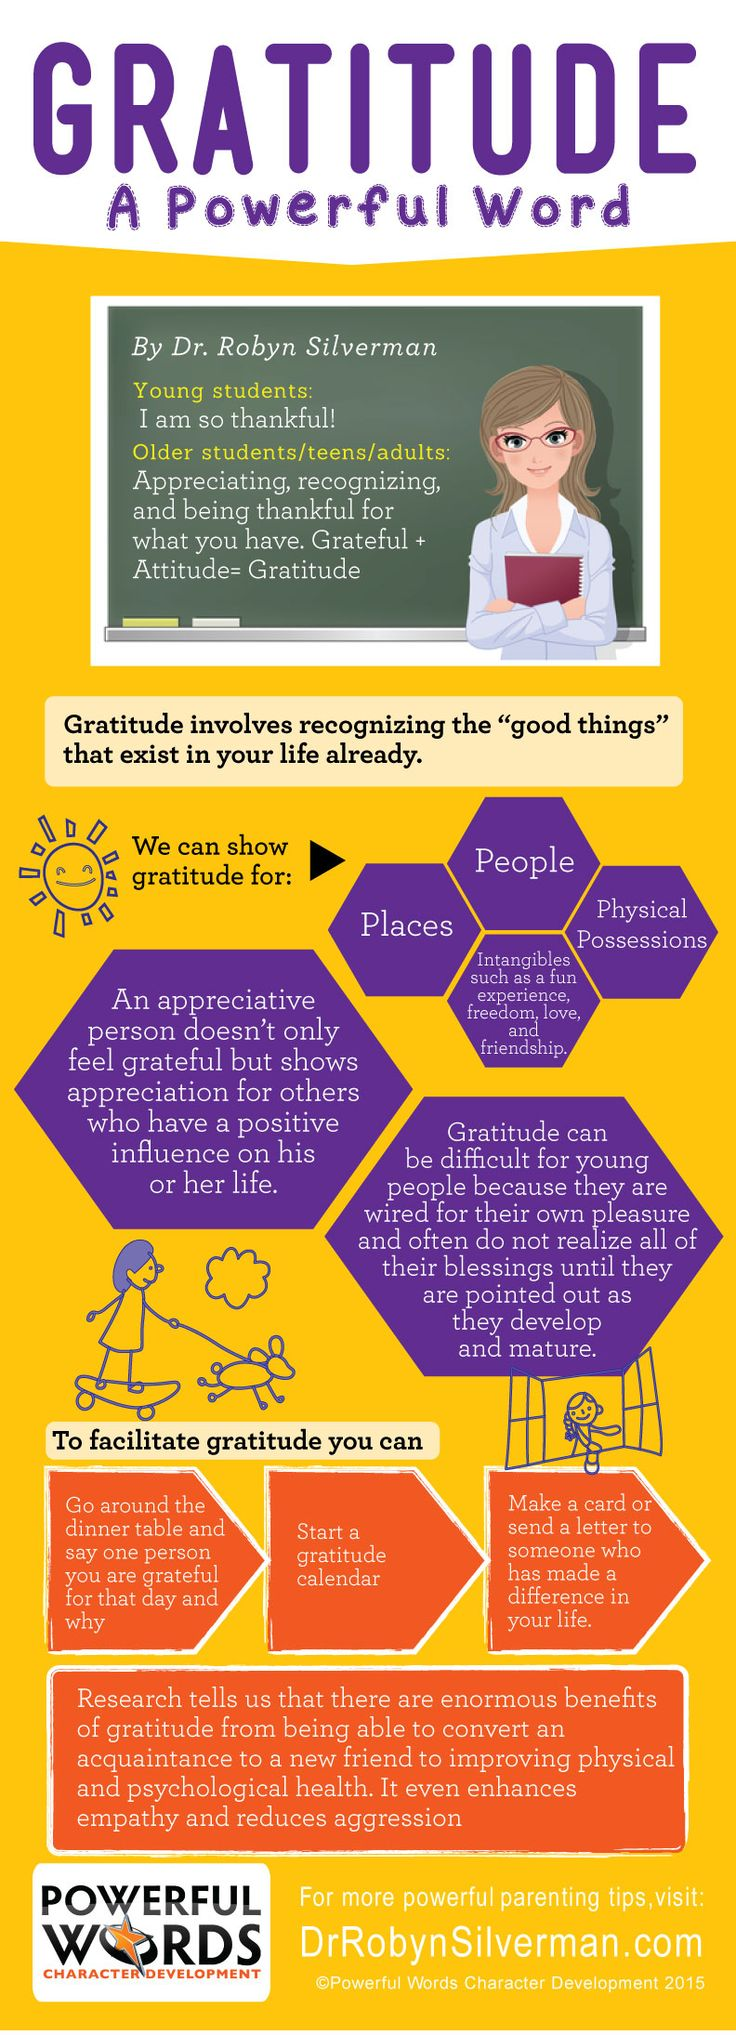 Teaching children about Gratitude